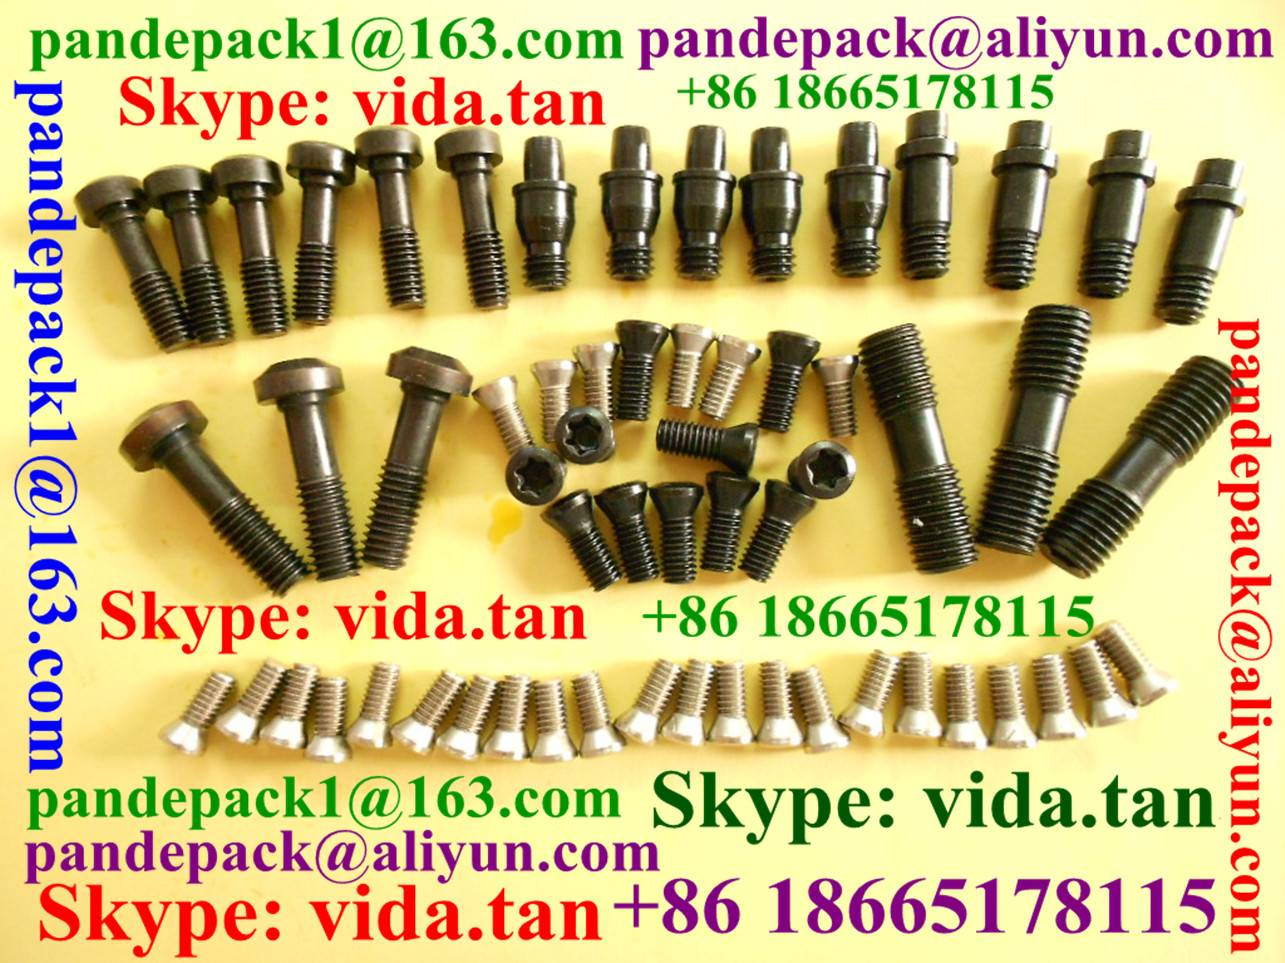 Torx Screw and Allen Screw for Tool Holder/Clamp Screw/Shim Screw/Insert Screw/Hexagonal Ring Screw